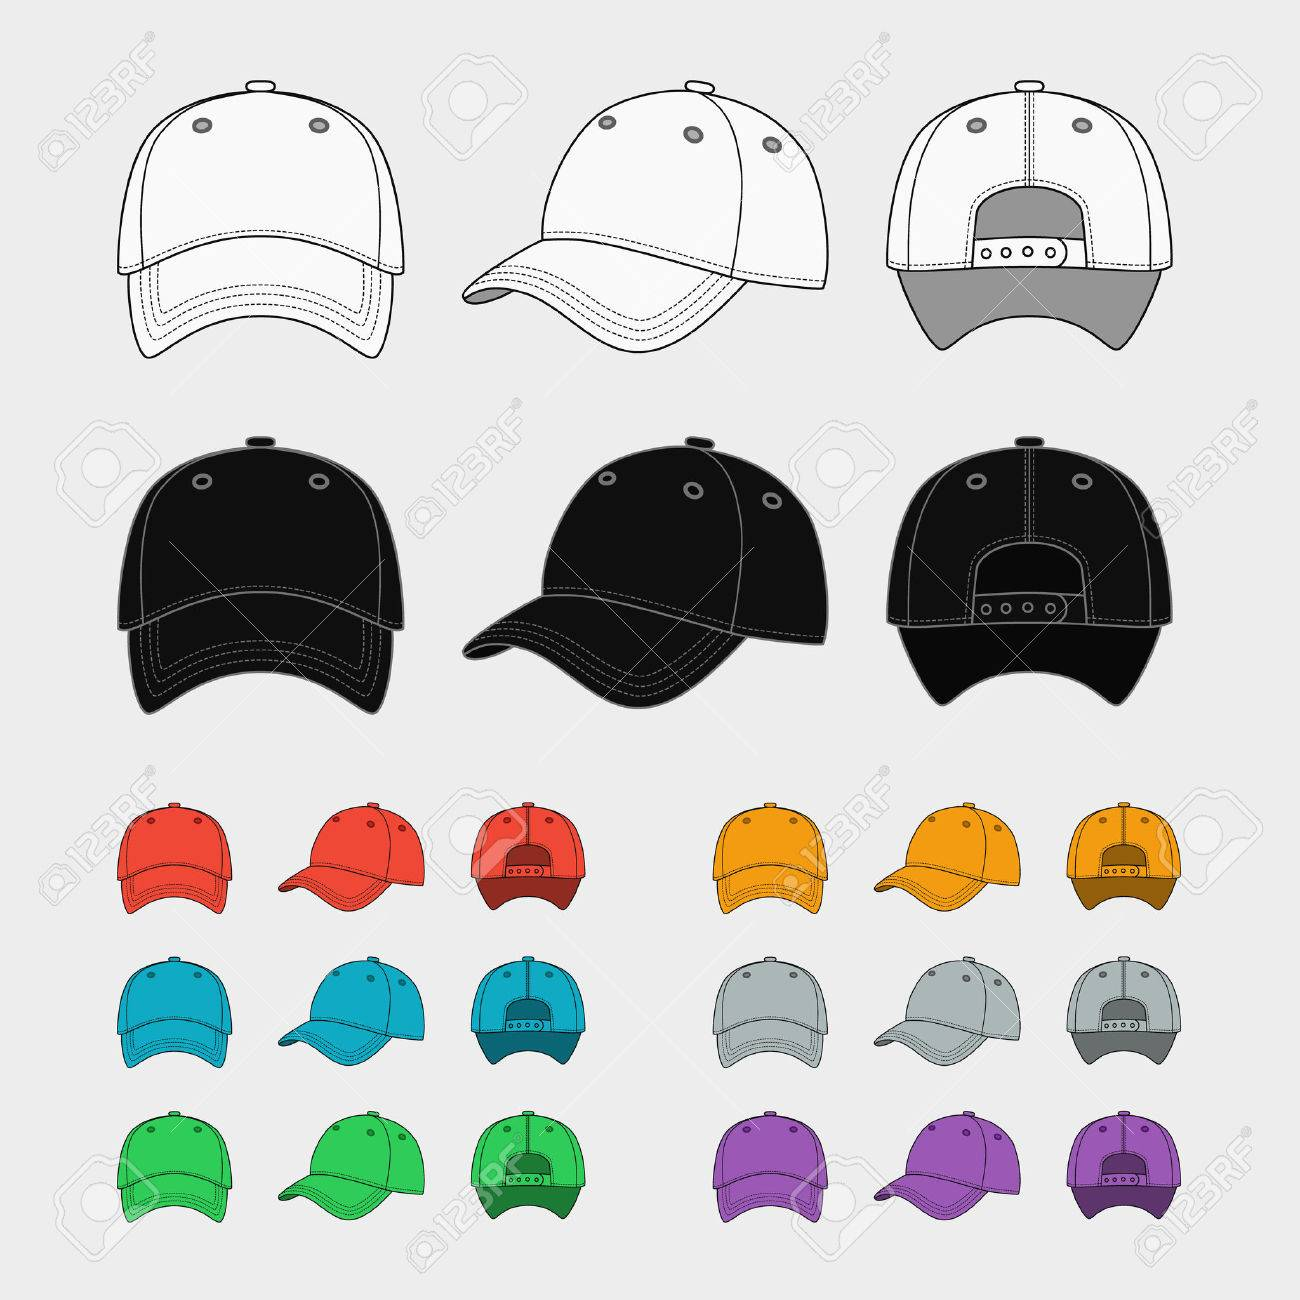 Baseball Cap Vector Template Royalty Free Cliparts, Vectors, And ...